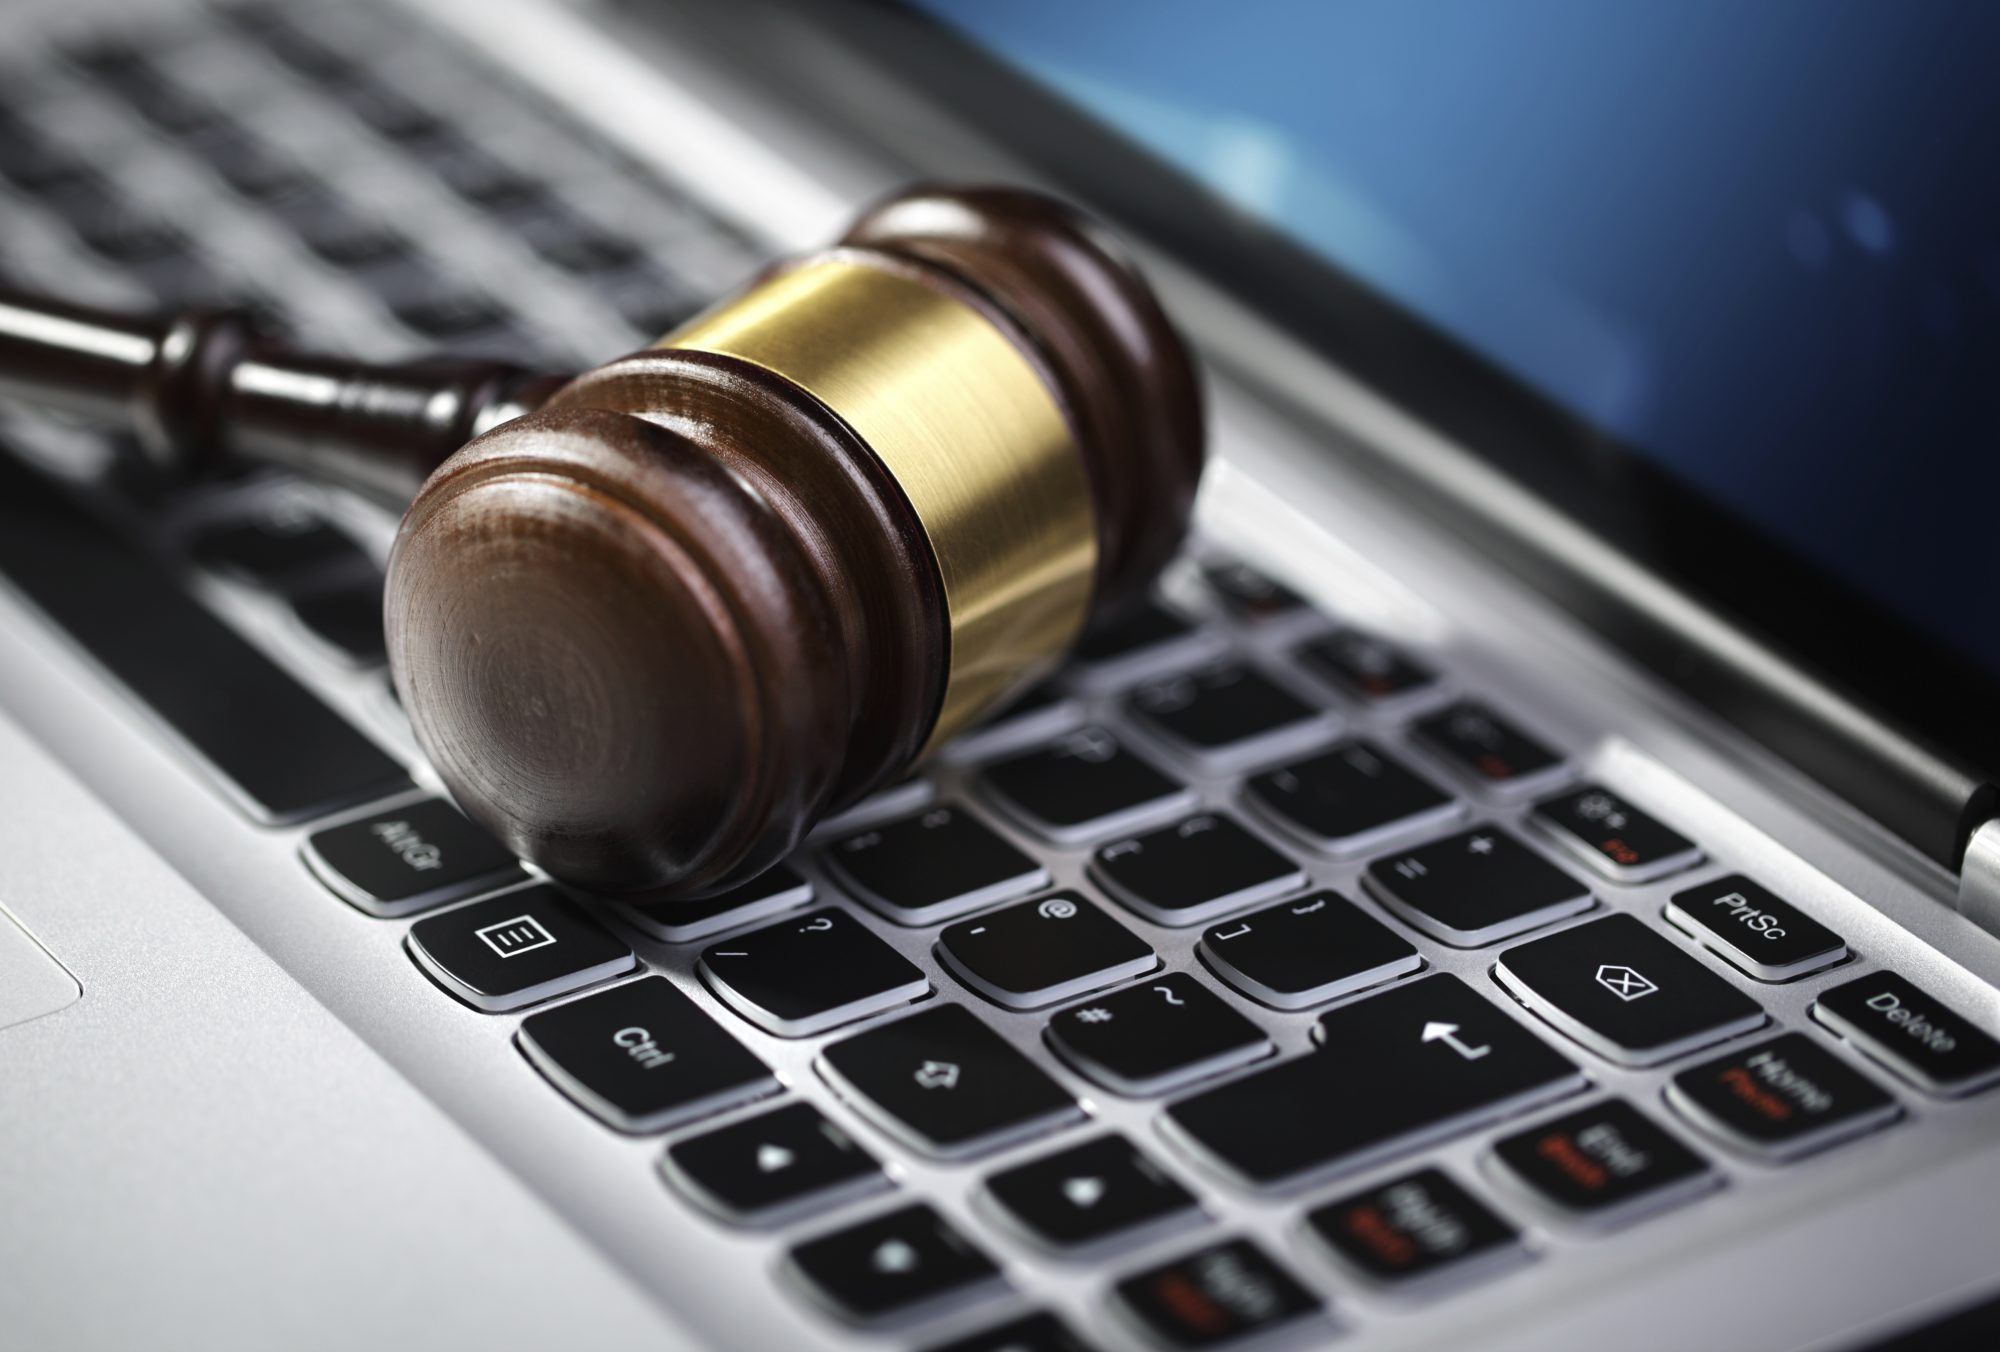 Justice gavel on top of a computer